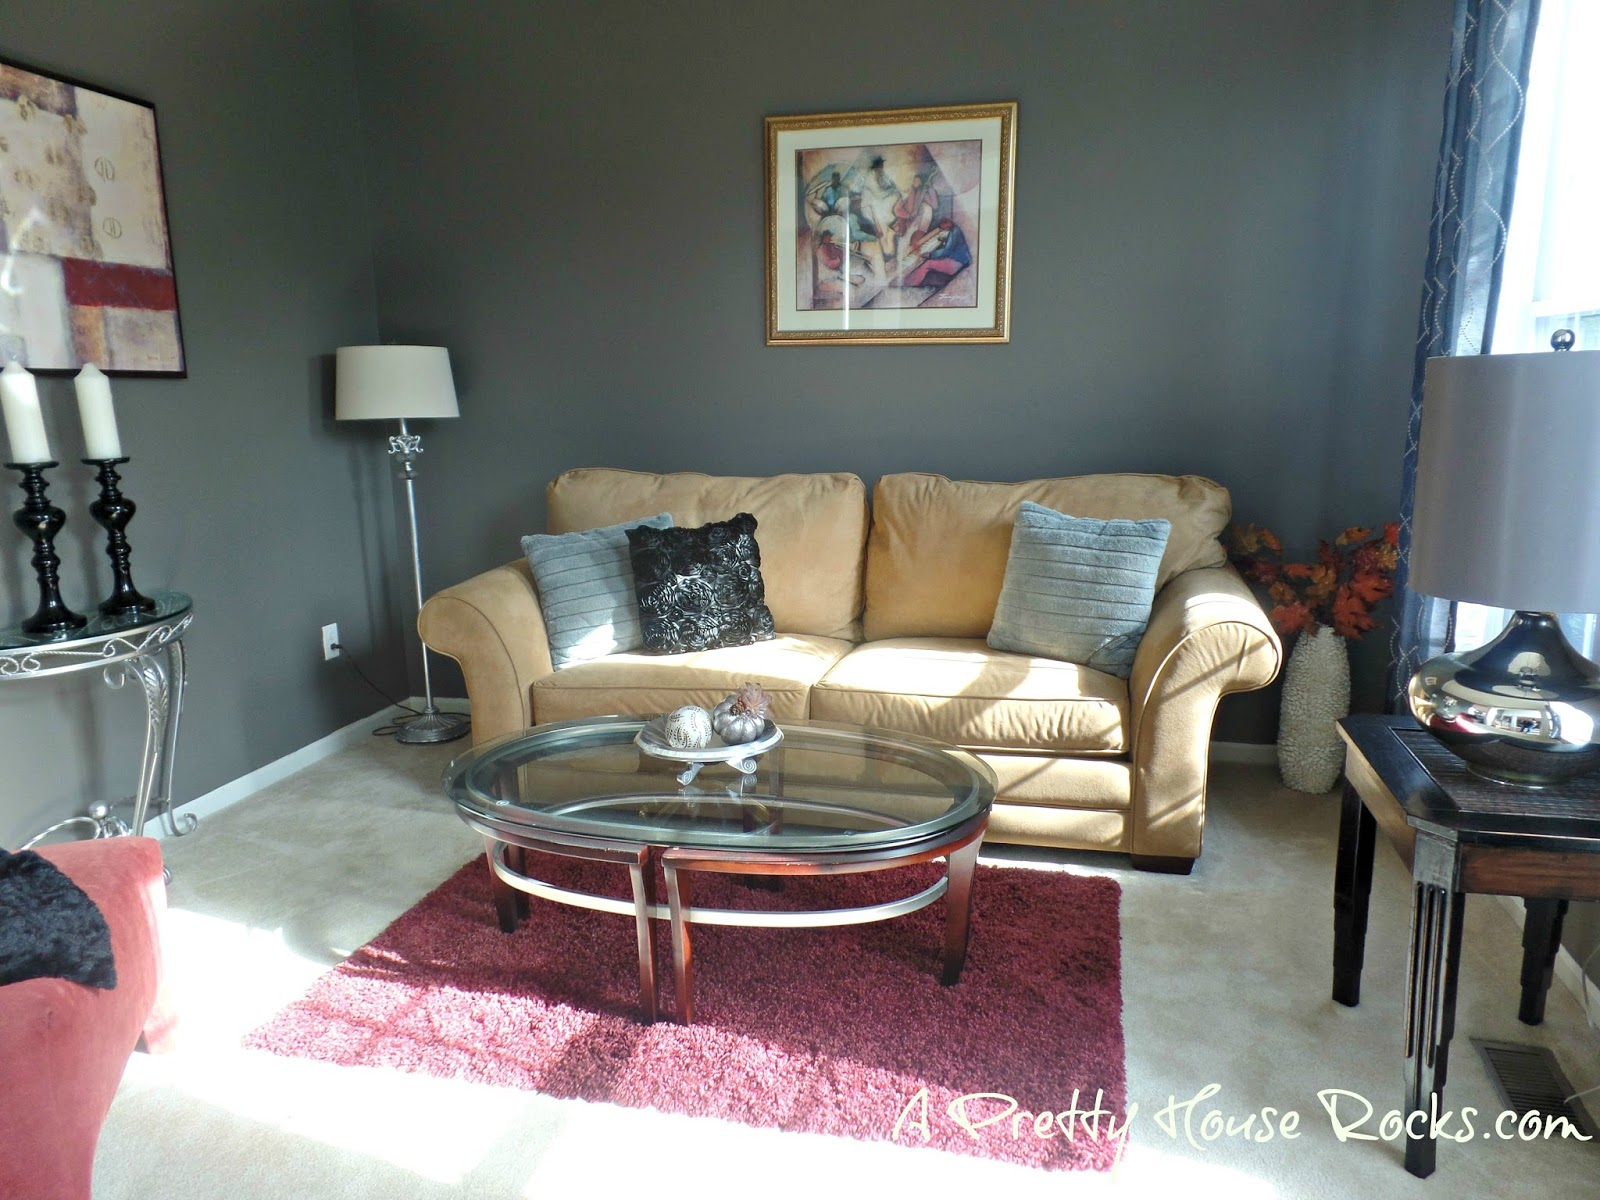 Updating a Living Room using the perfect Gray Paint - A Pretty ...